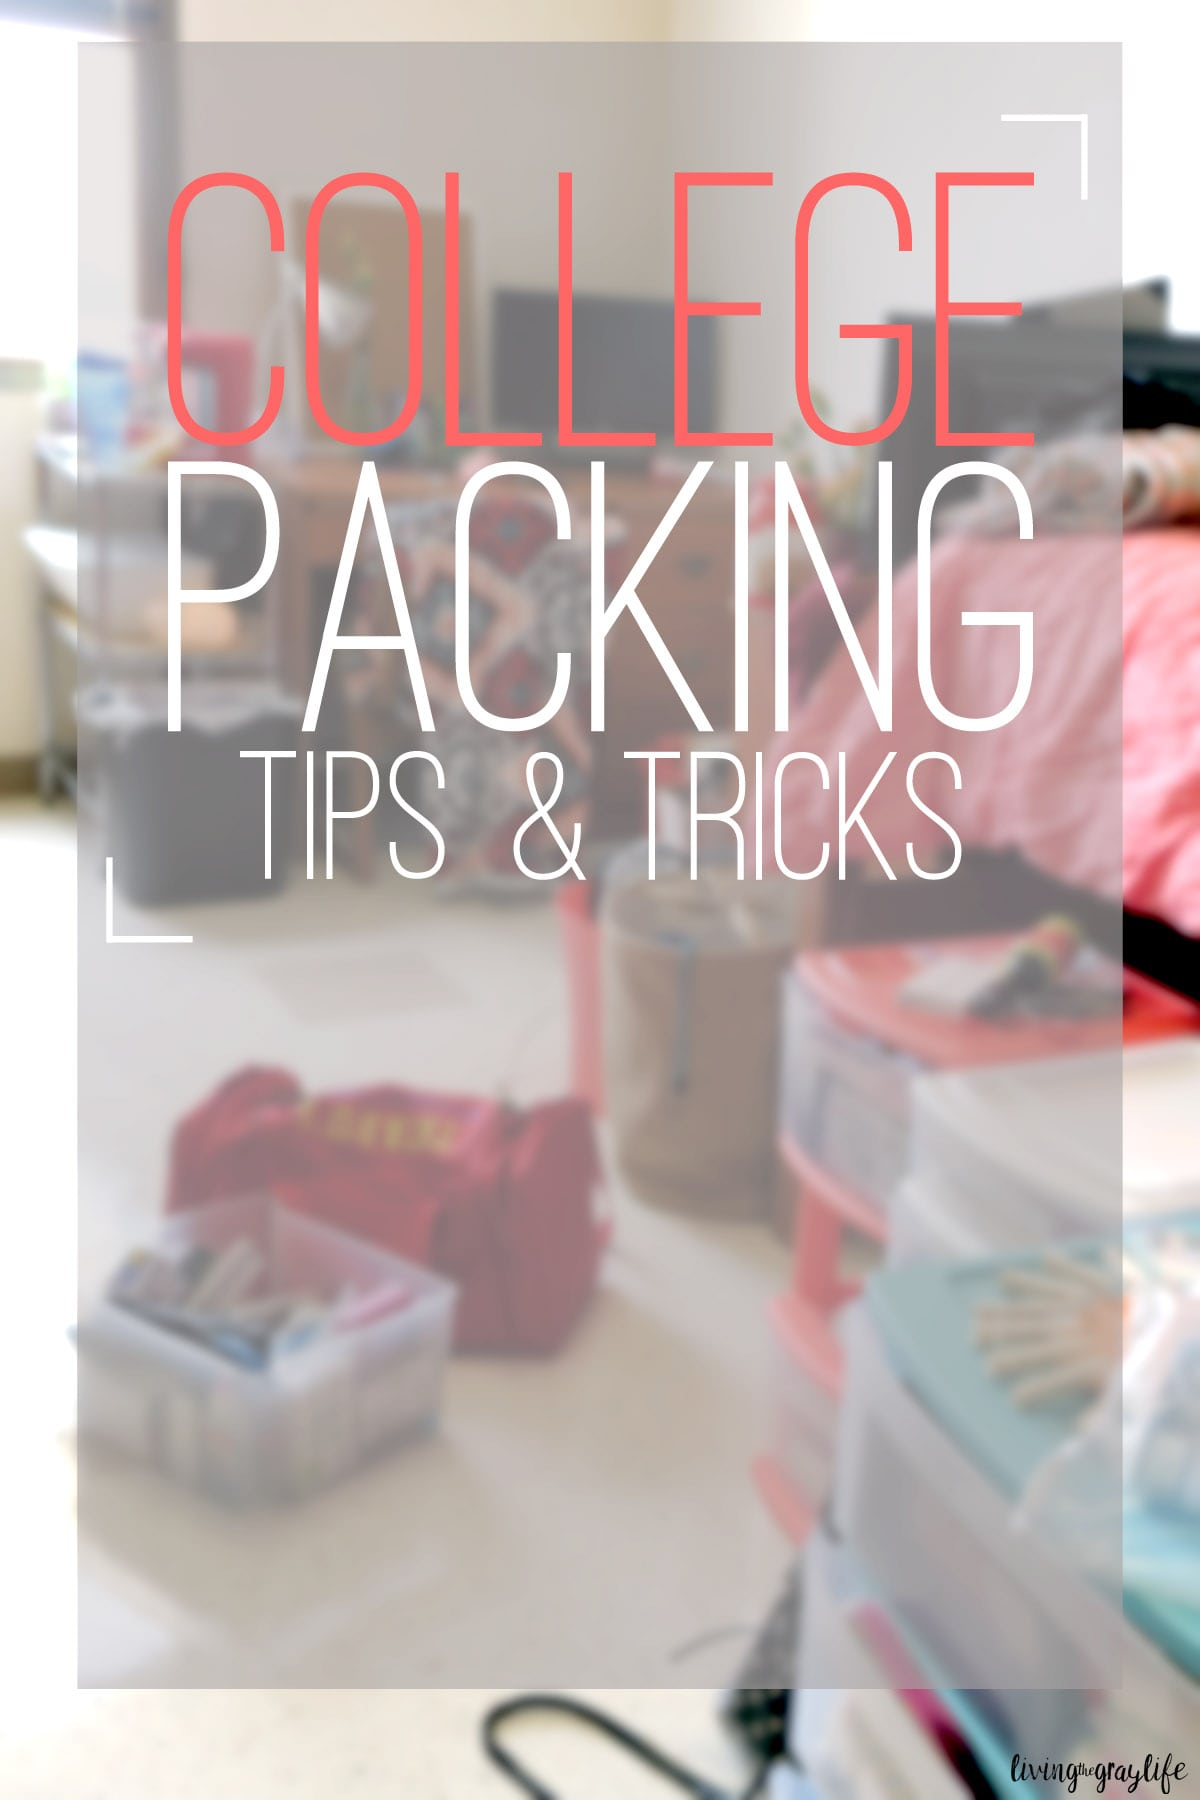 College Packing Tips & Tricks for a Successful Move In